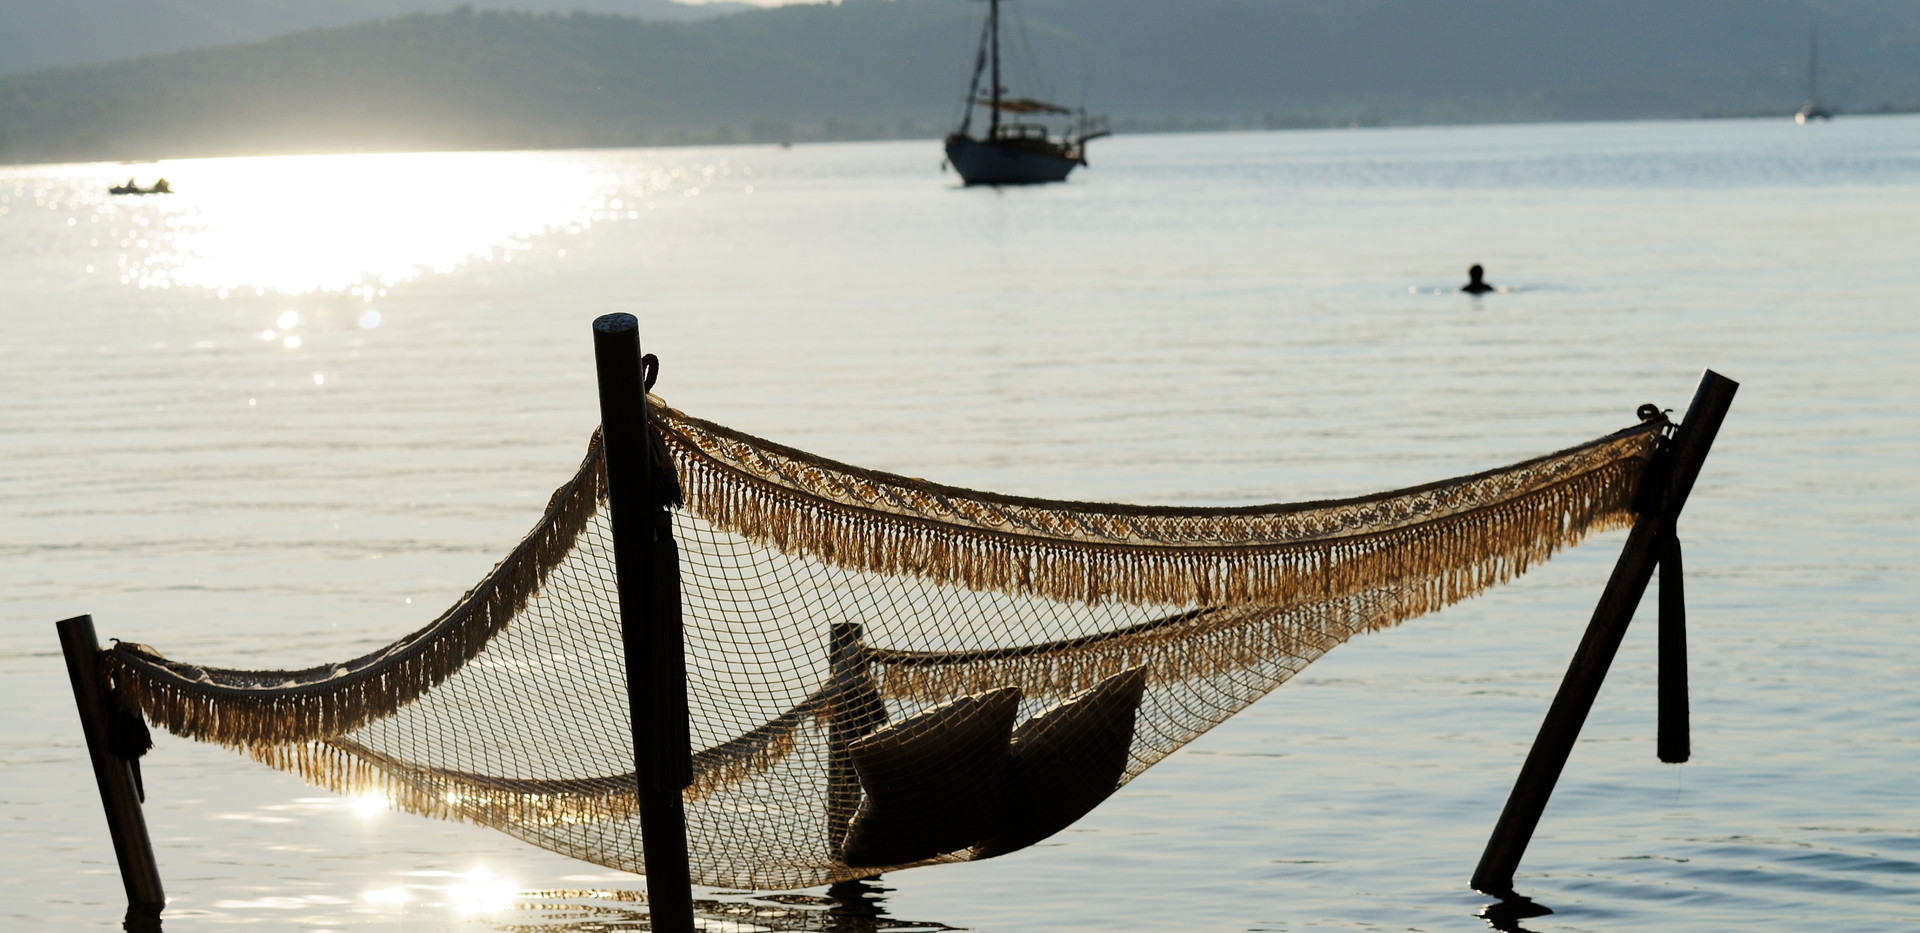 CTRLZAK_ekies_new_sea-Hammock.JPG